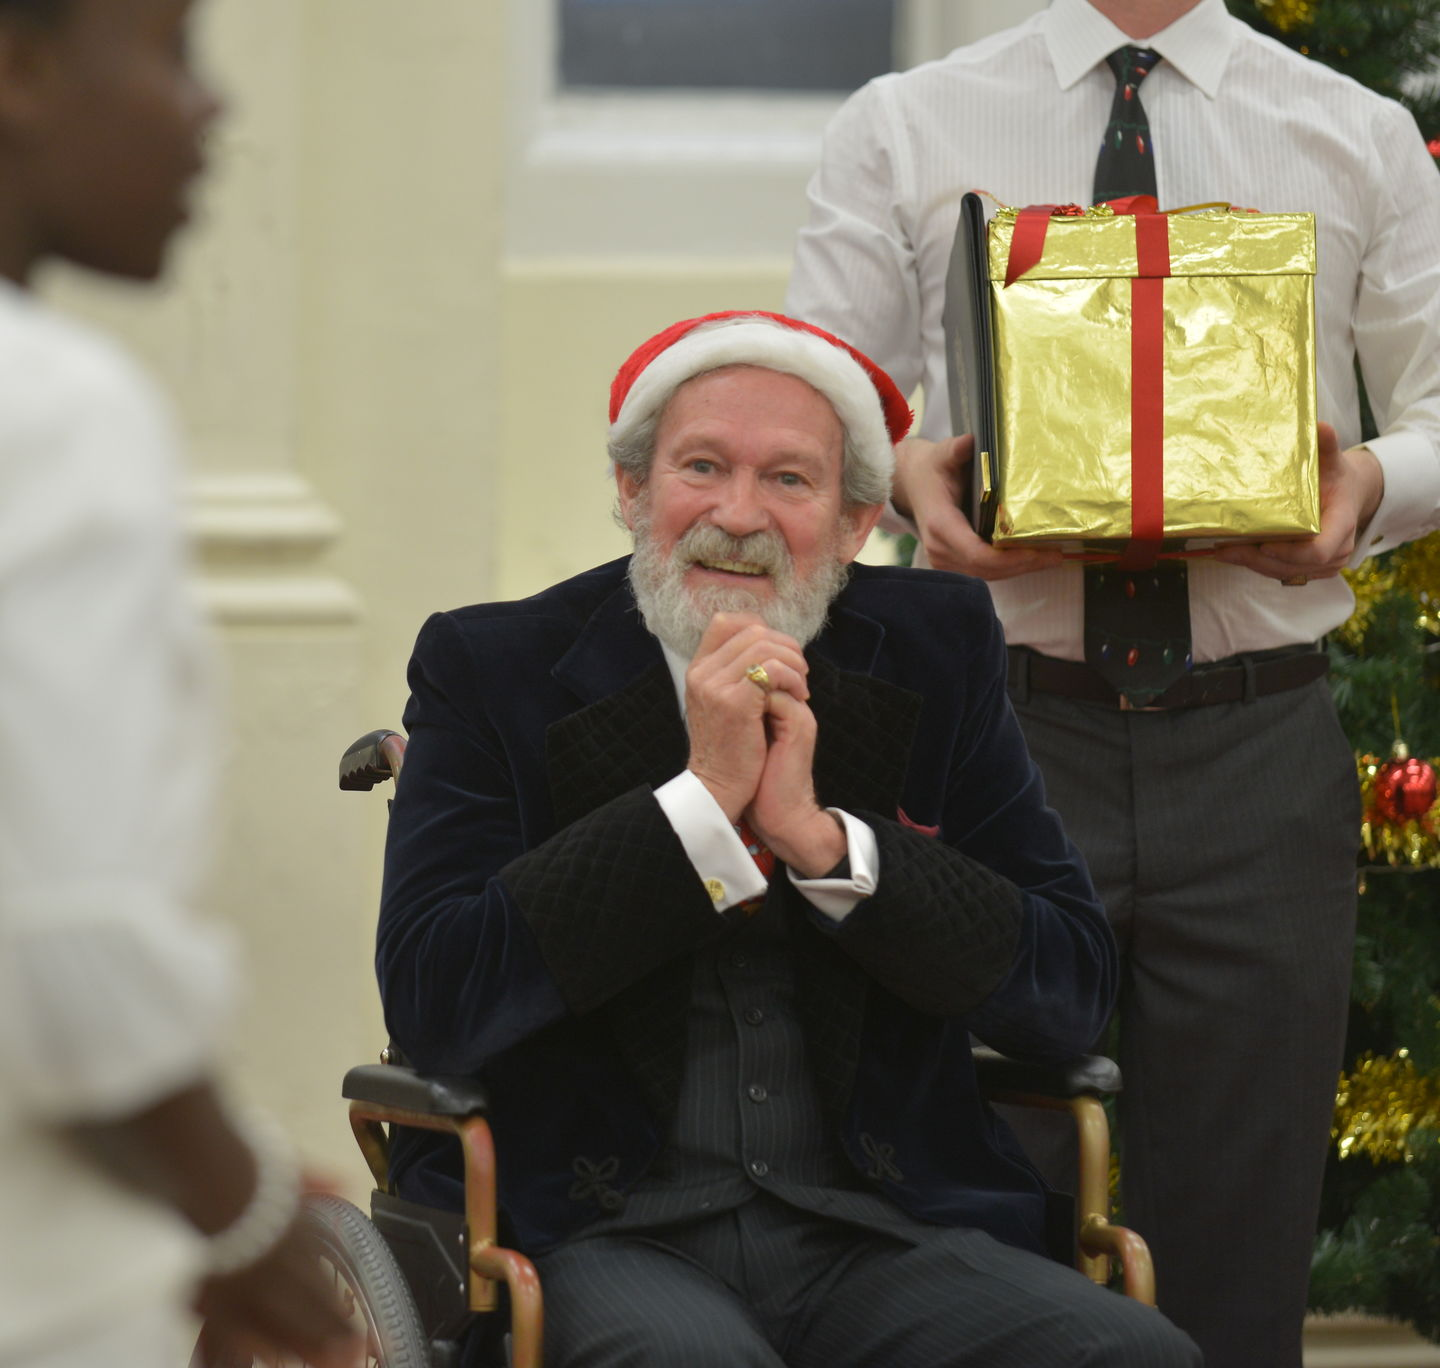 A man with a grey beard wearing a suit and a santa hat sits in a wheelchair. A man stands behind him holding a large gold-wrapped present.